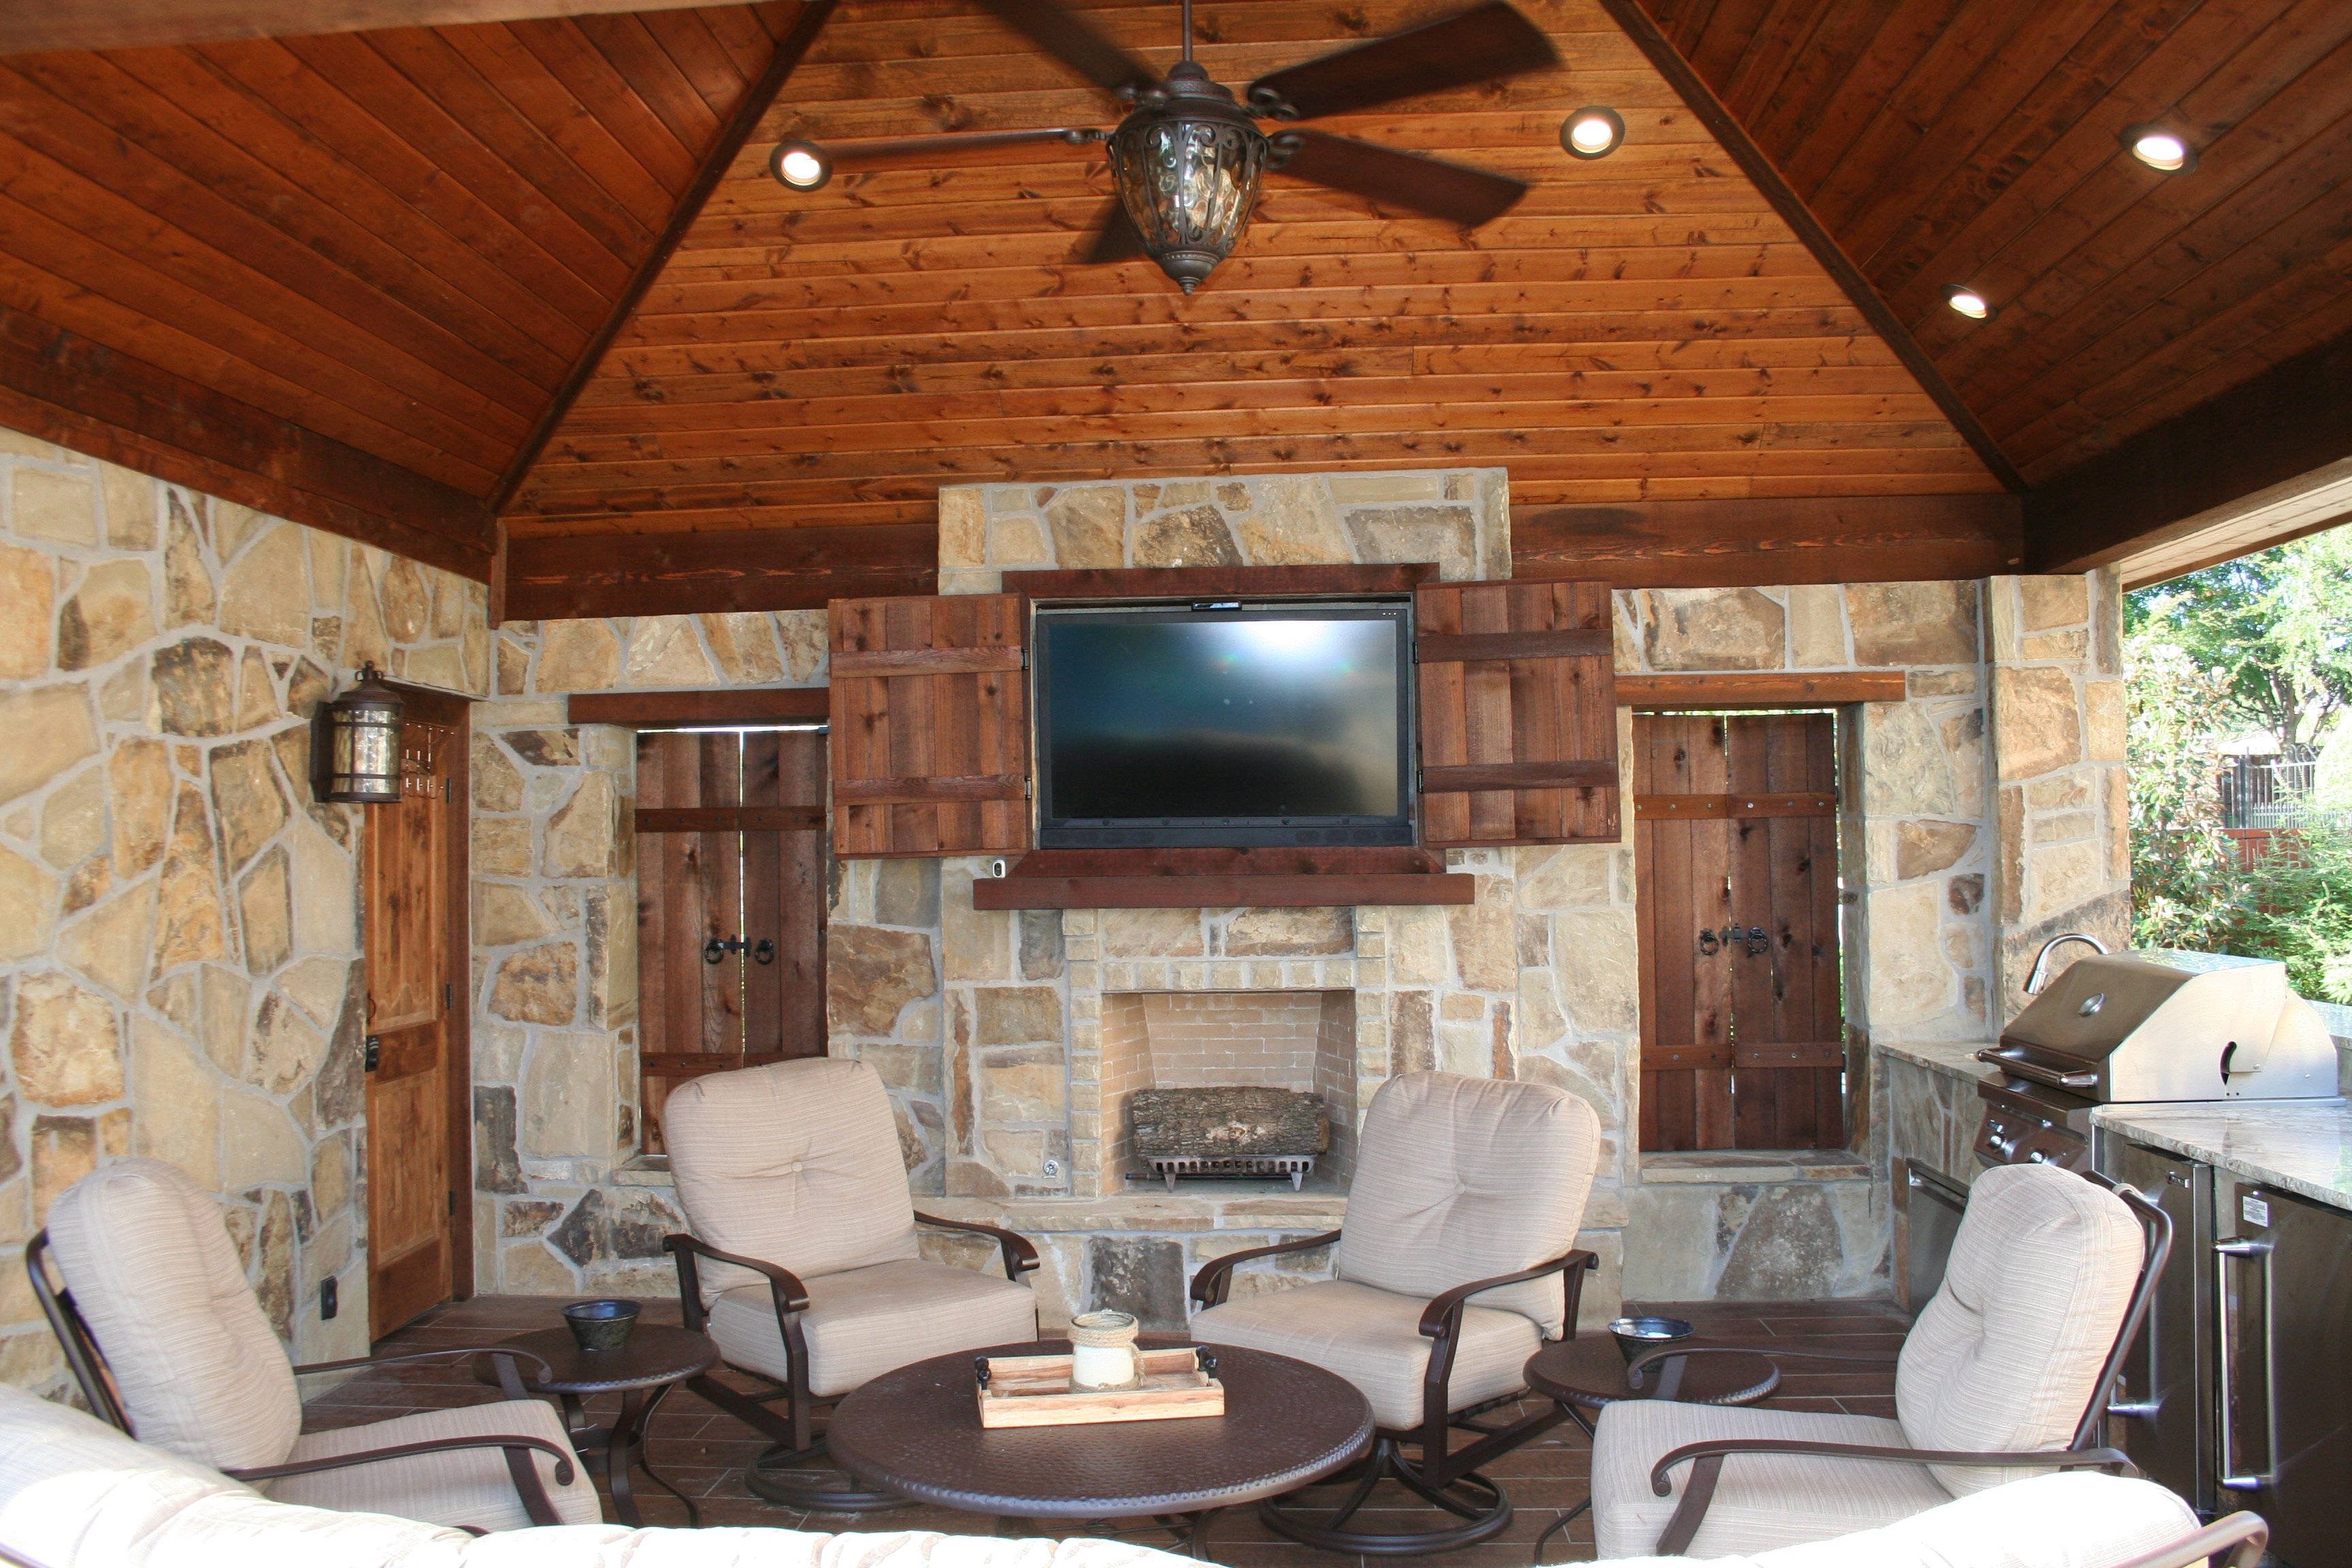 Solid Roof Structure, with Wood beam Accents, Bathroom, Granite Bar with Grill & Zodiac Equipment